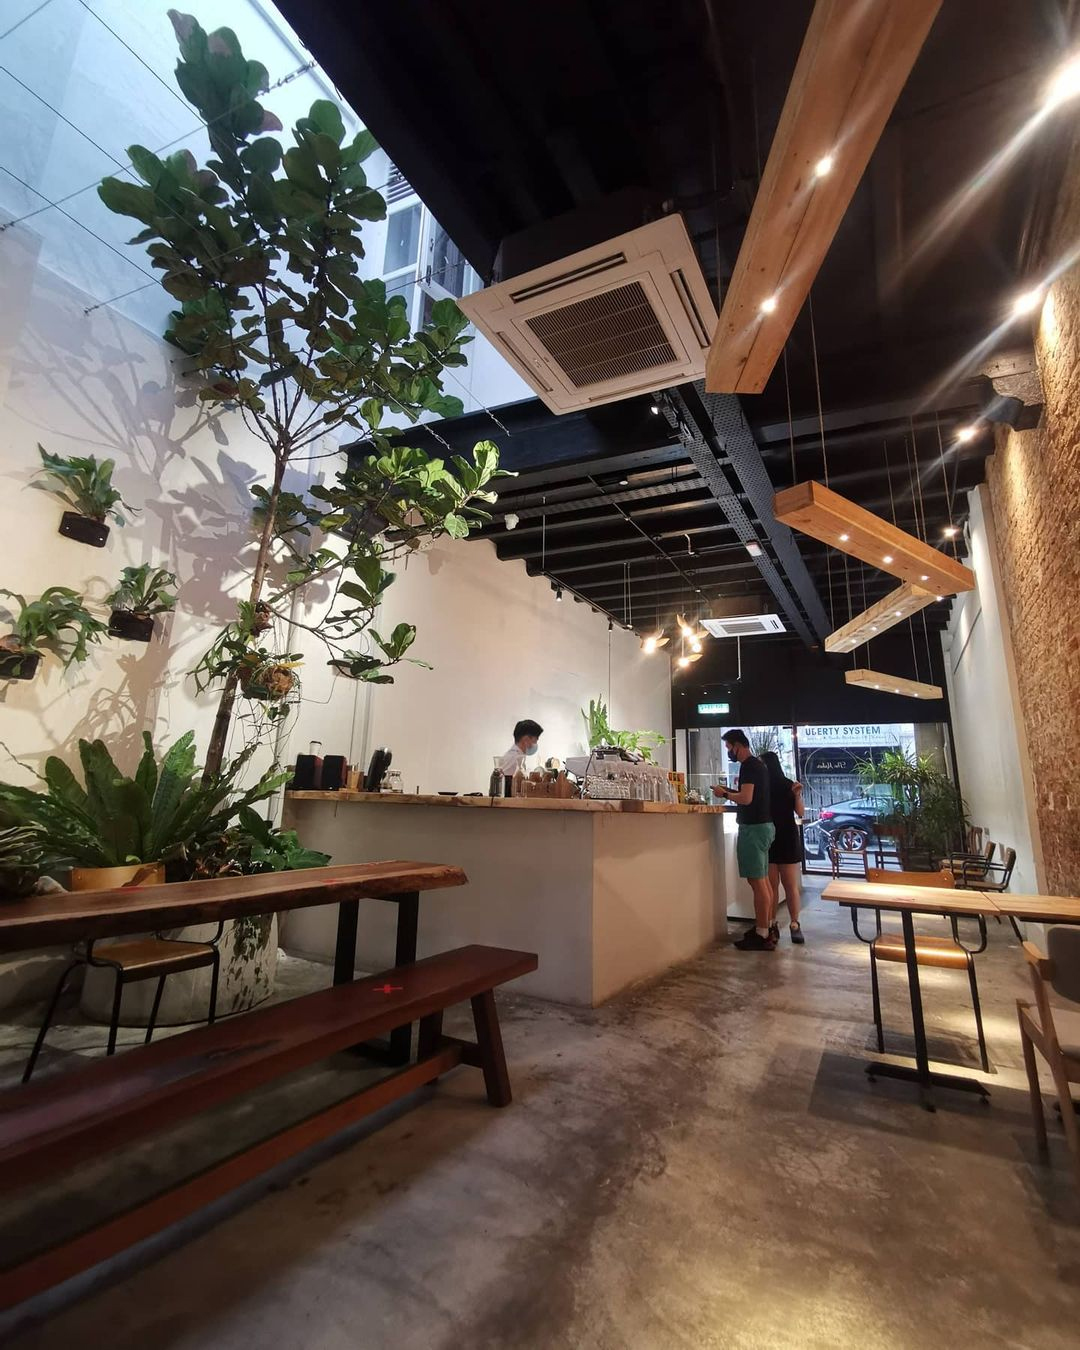 New cafes in Penang - The Maker